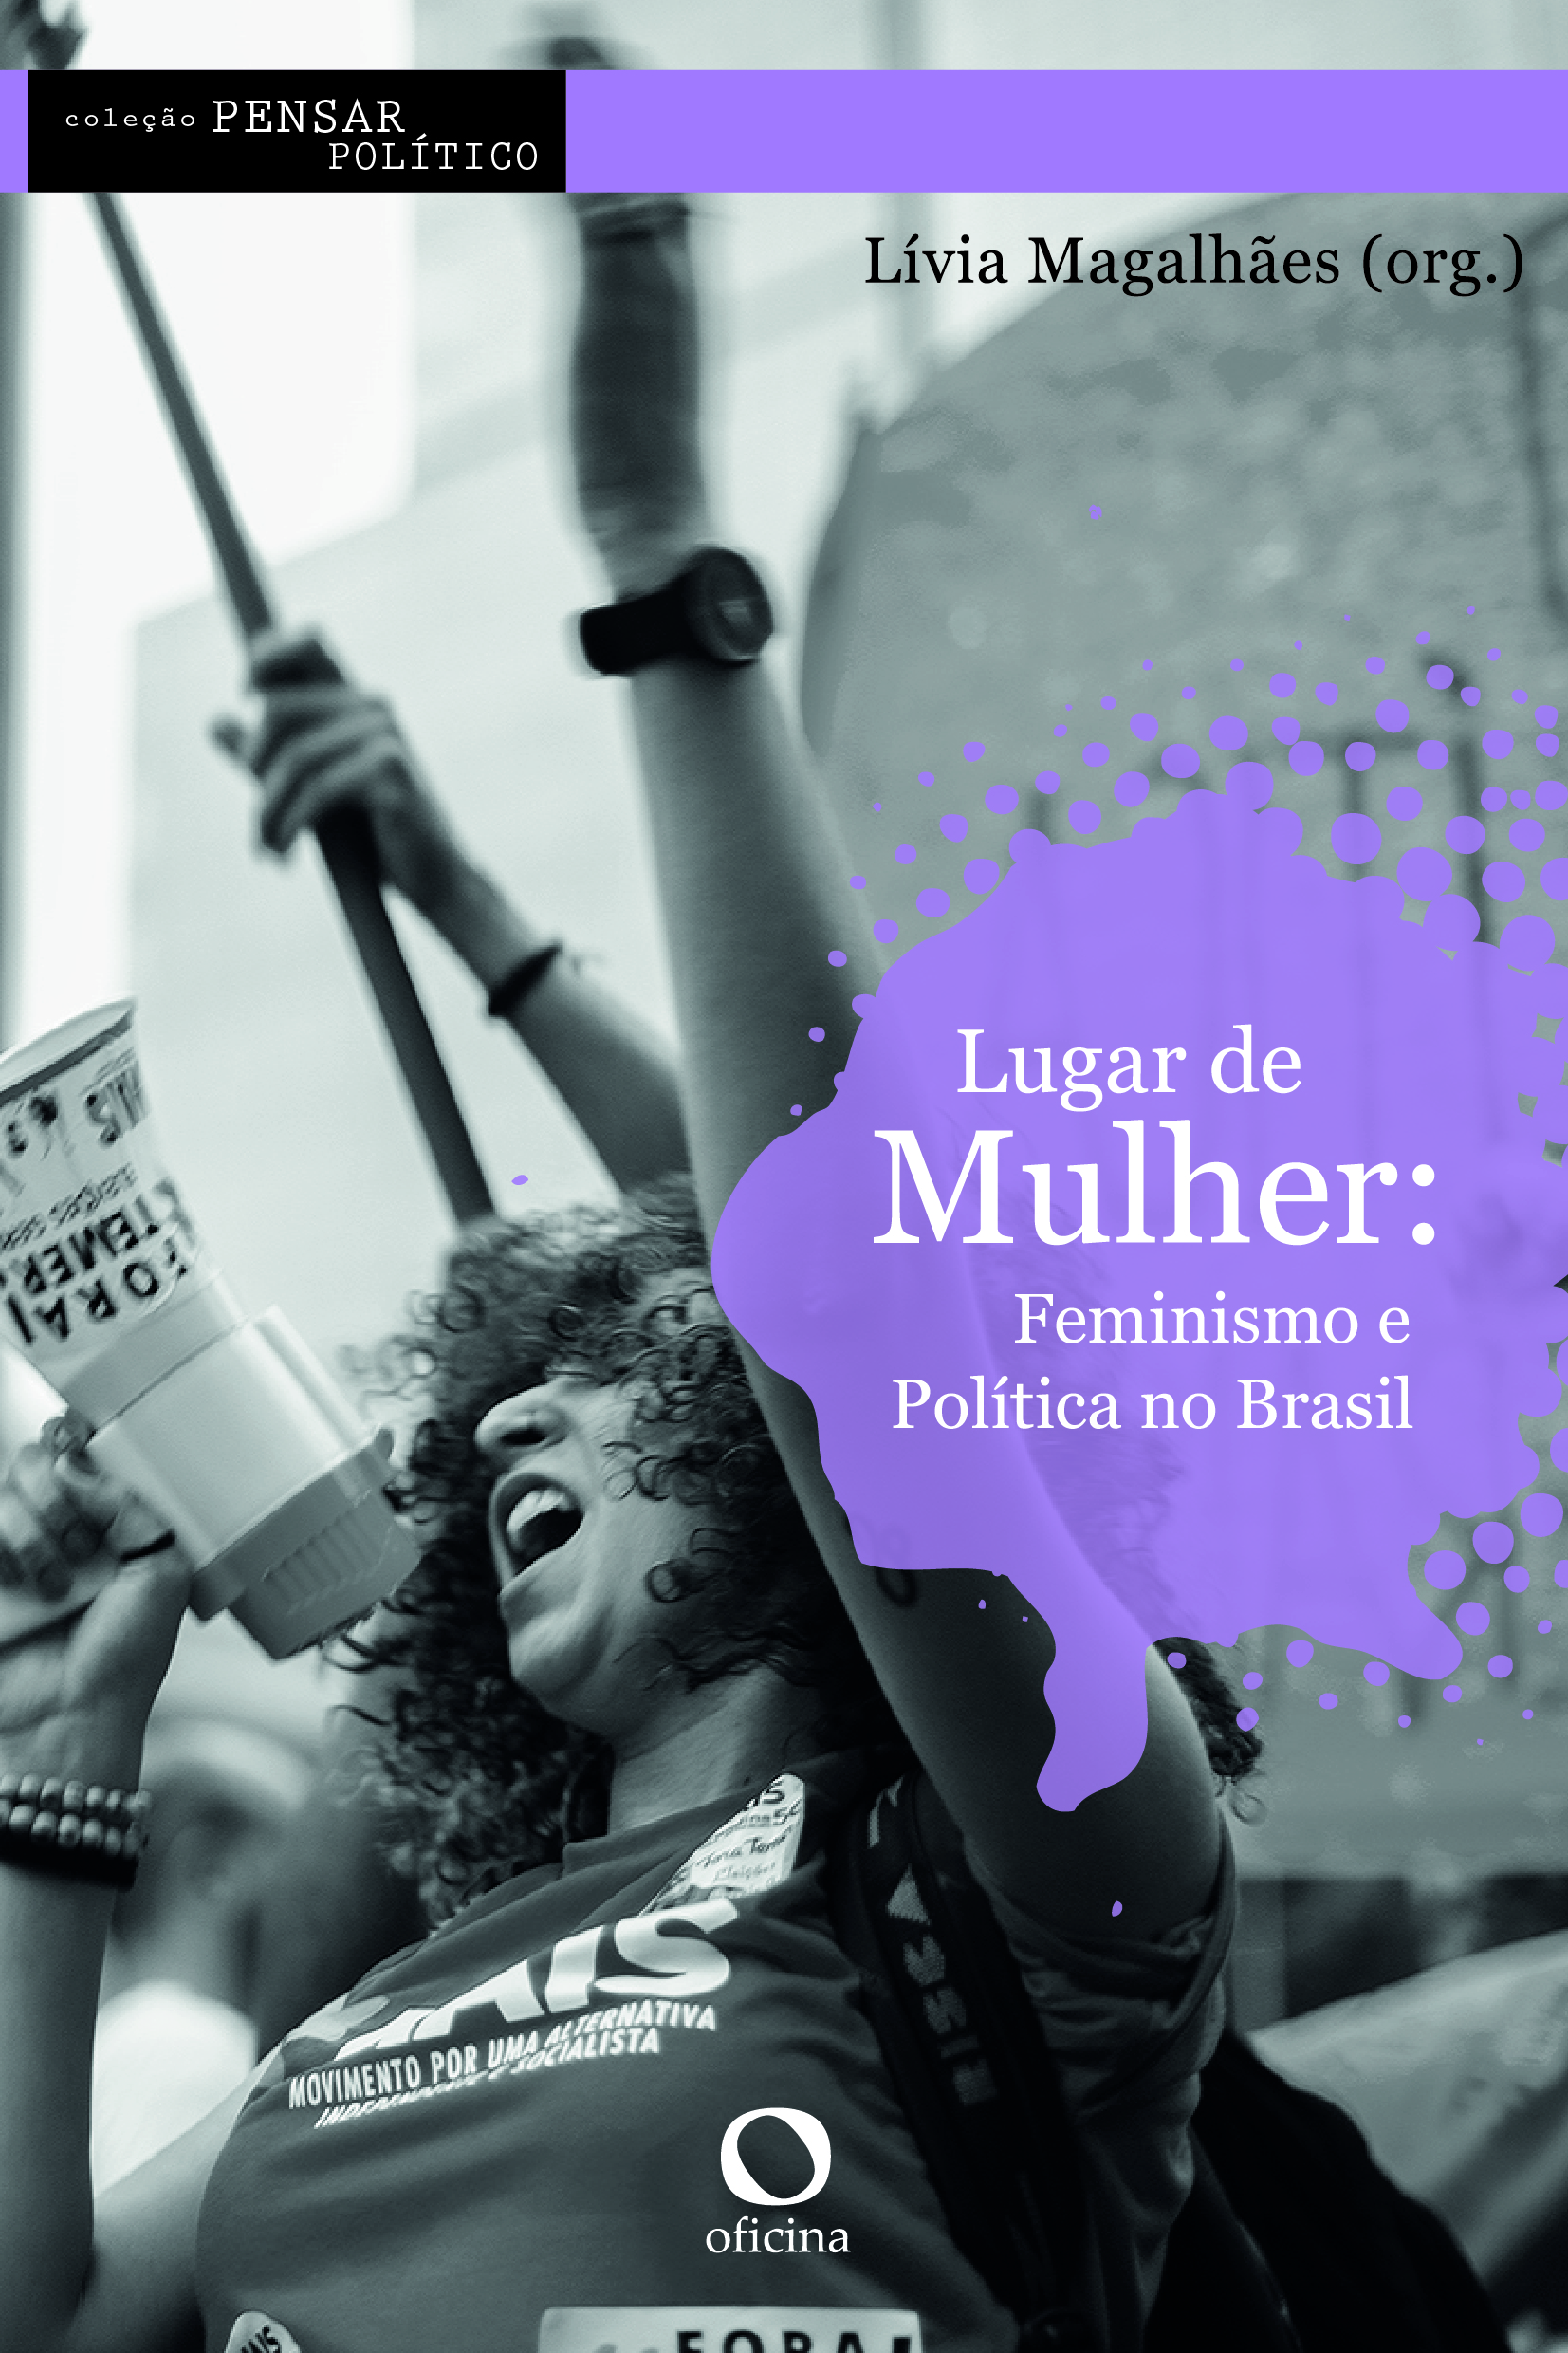 Women's Place: Feminism and Politics in Brazil